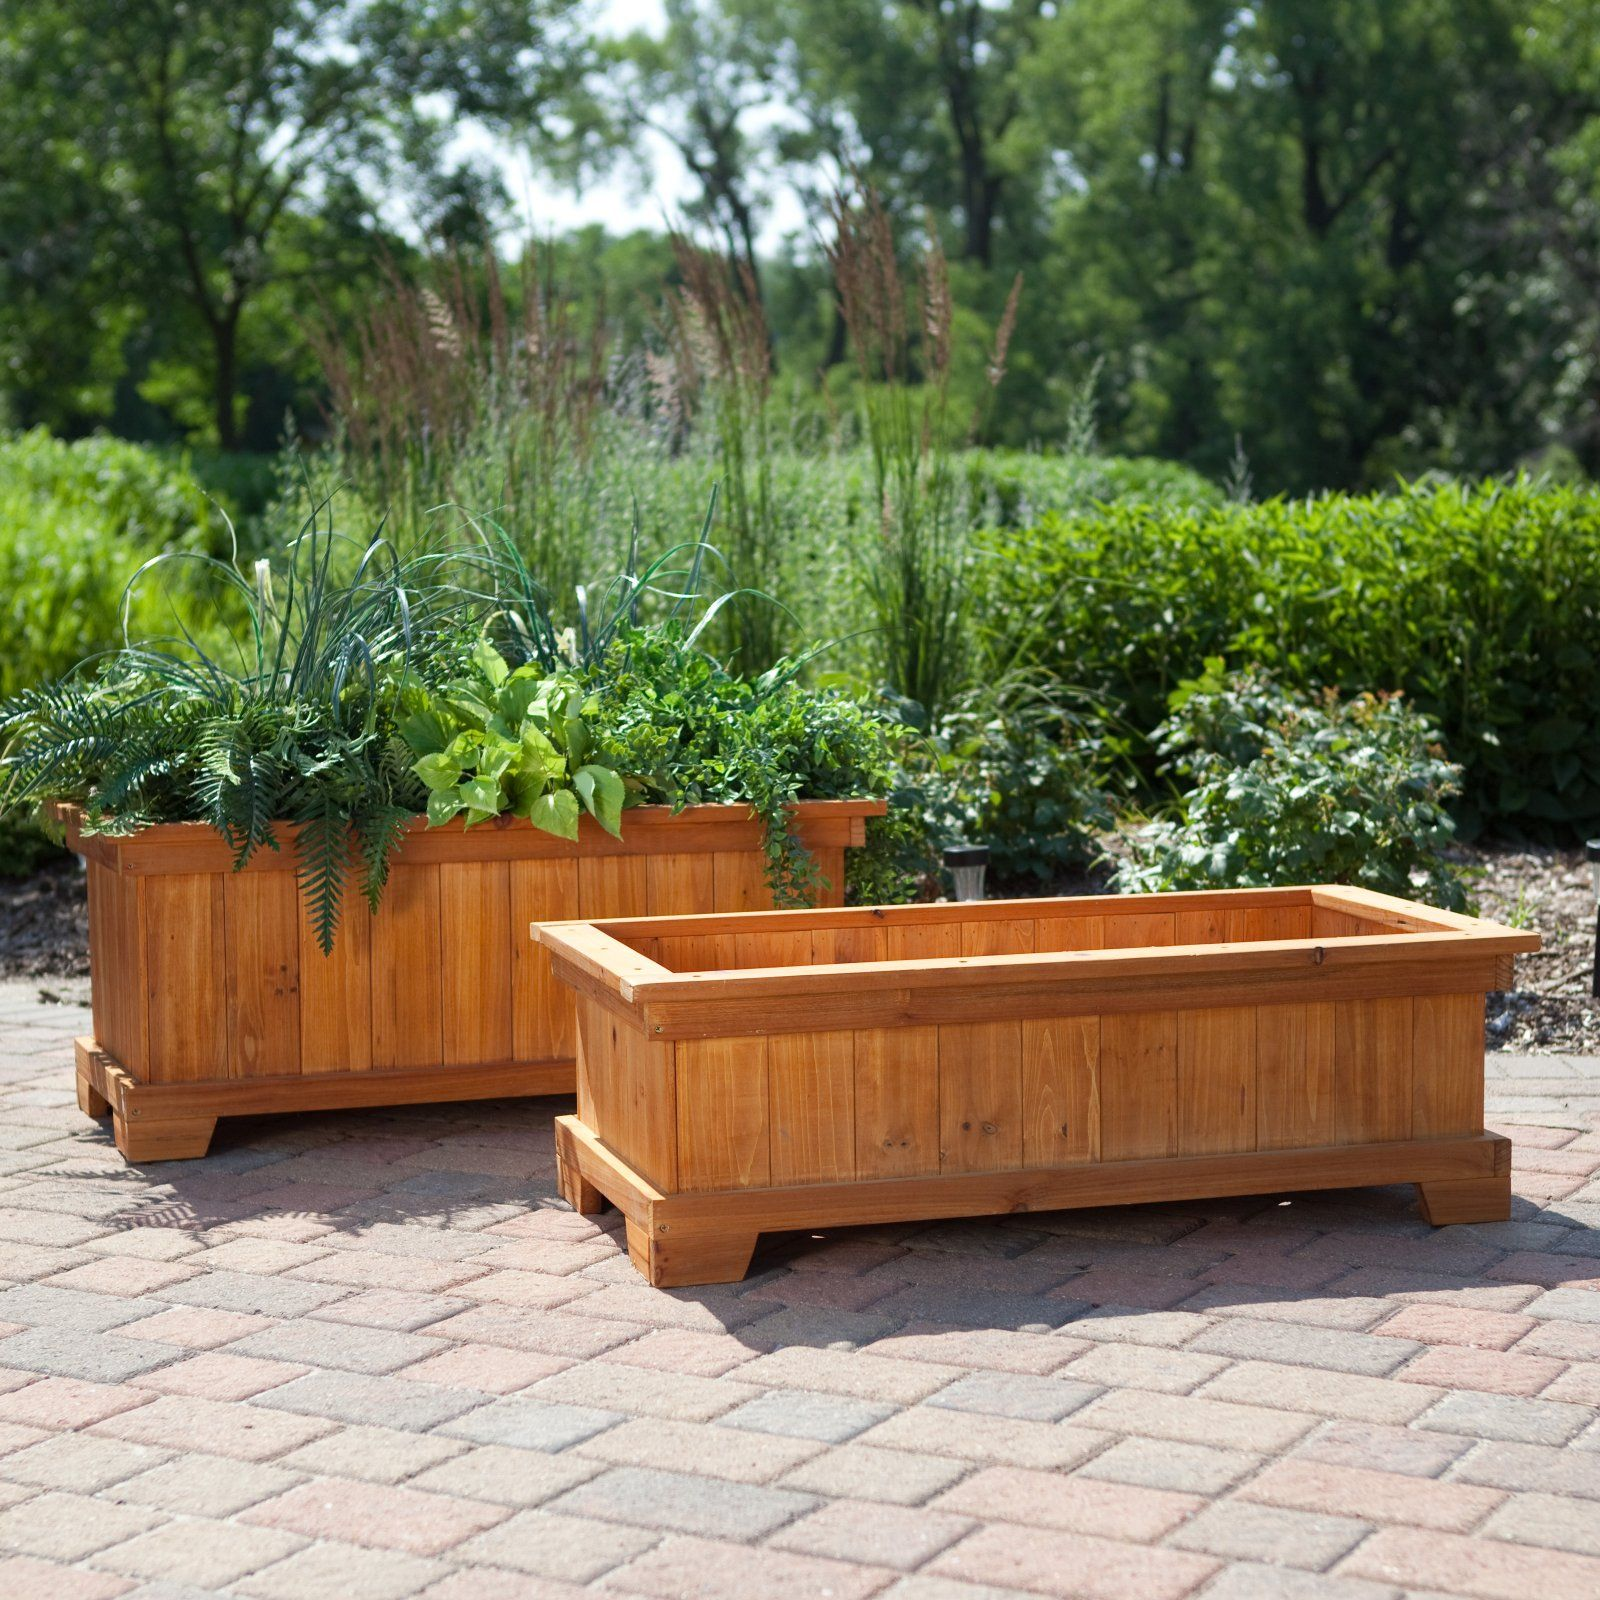 Superieur Patio Planter Box. Good Way To Use Extra Wood Flooring.